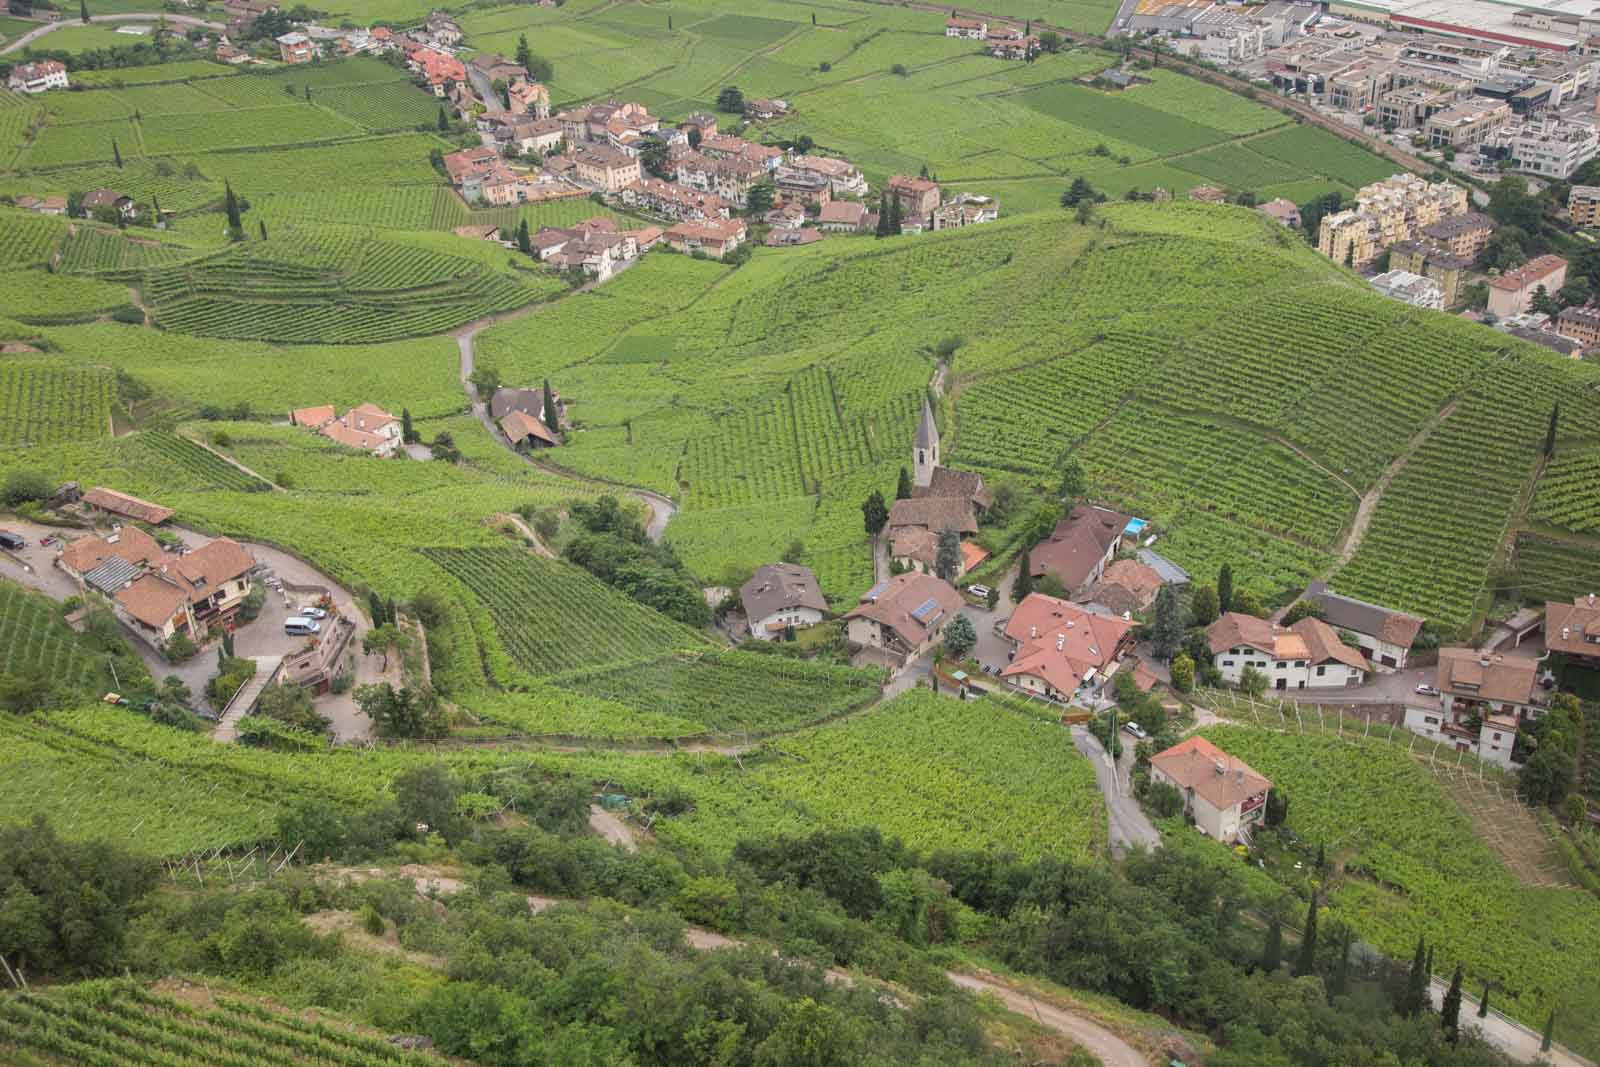 An overview from the Ritten lift of the Santa Maddalena vineyards near Bolzano. ©Kevin Day/Opening a Bottle